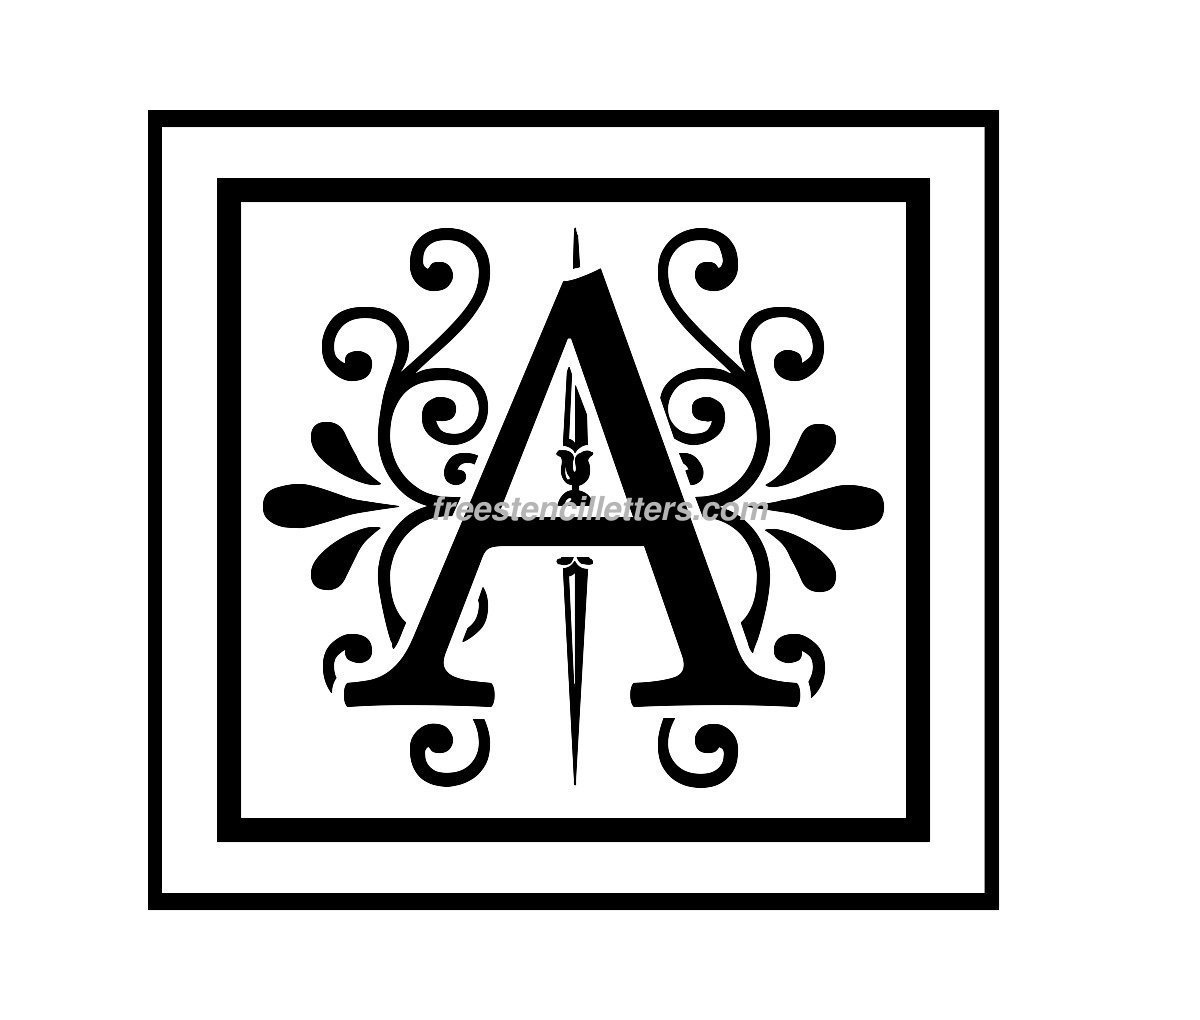 Print A Letter Stencil - Free Stencil Letters - Free Printable Alphabet Stencils To Cut Out